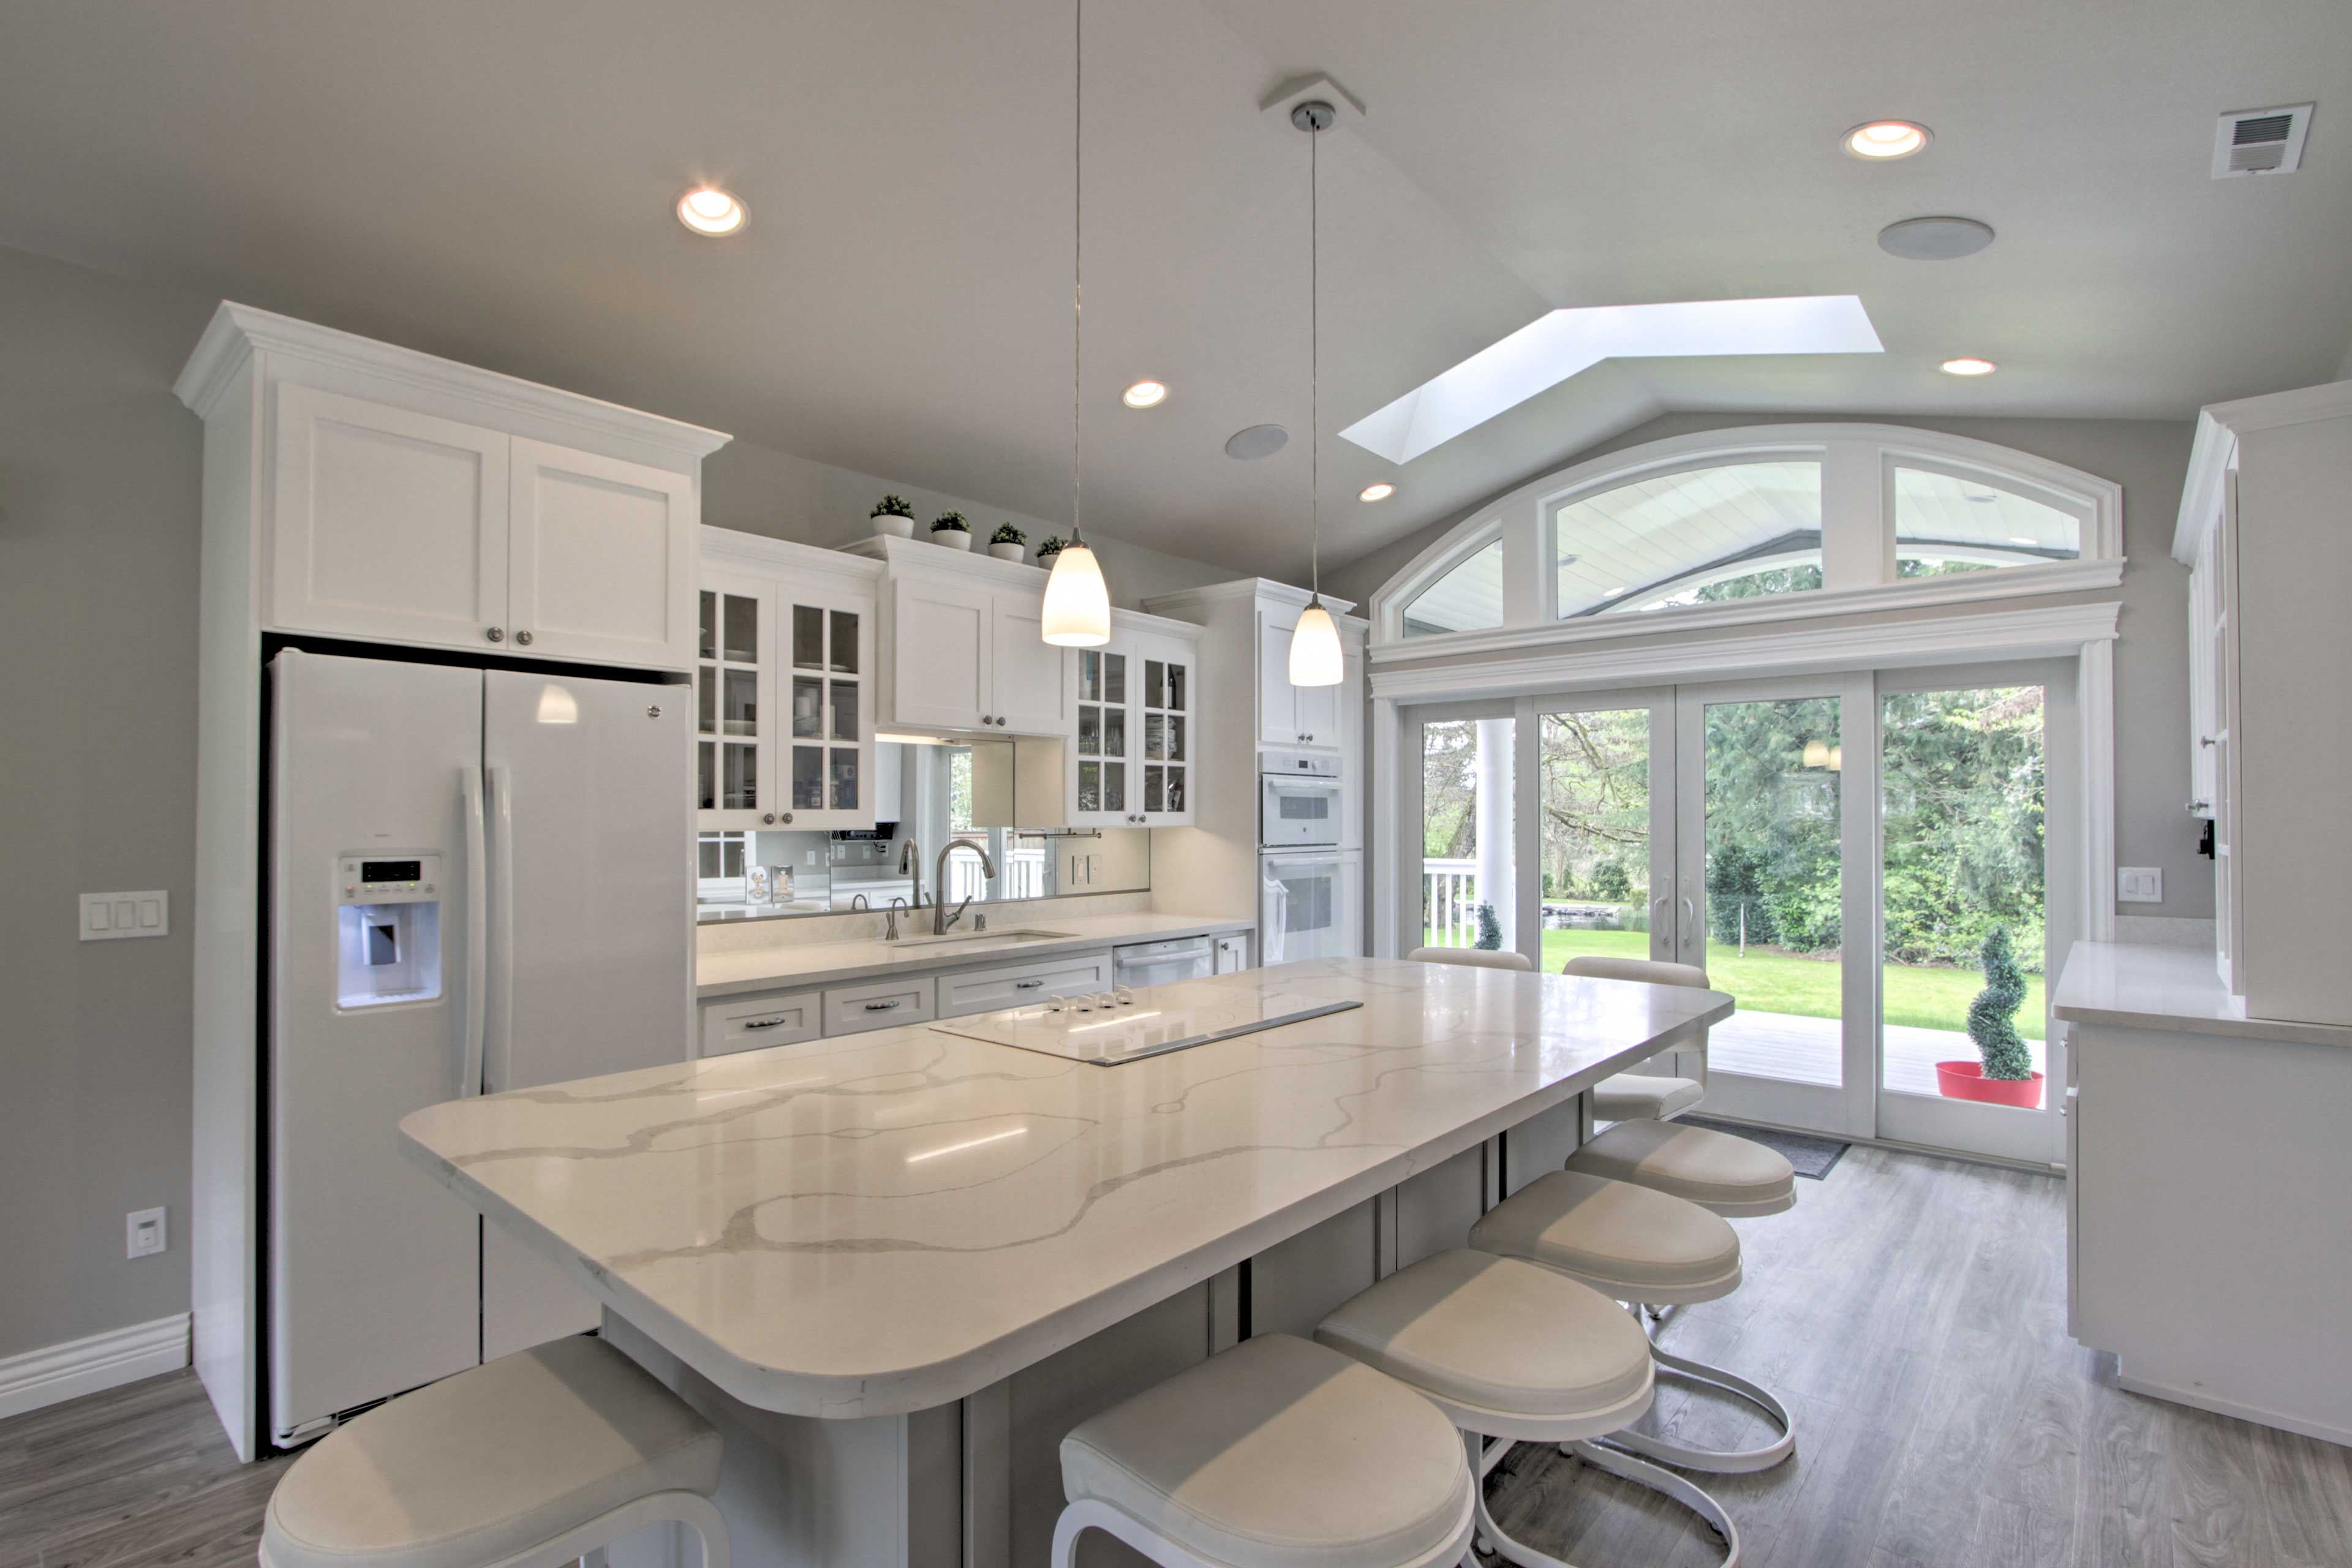 The unit boasts a fully equipped kitchen and plenty of natural sunlight.